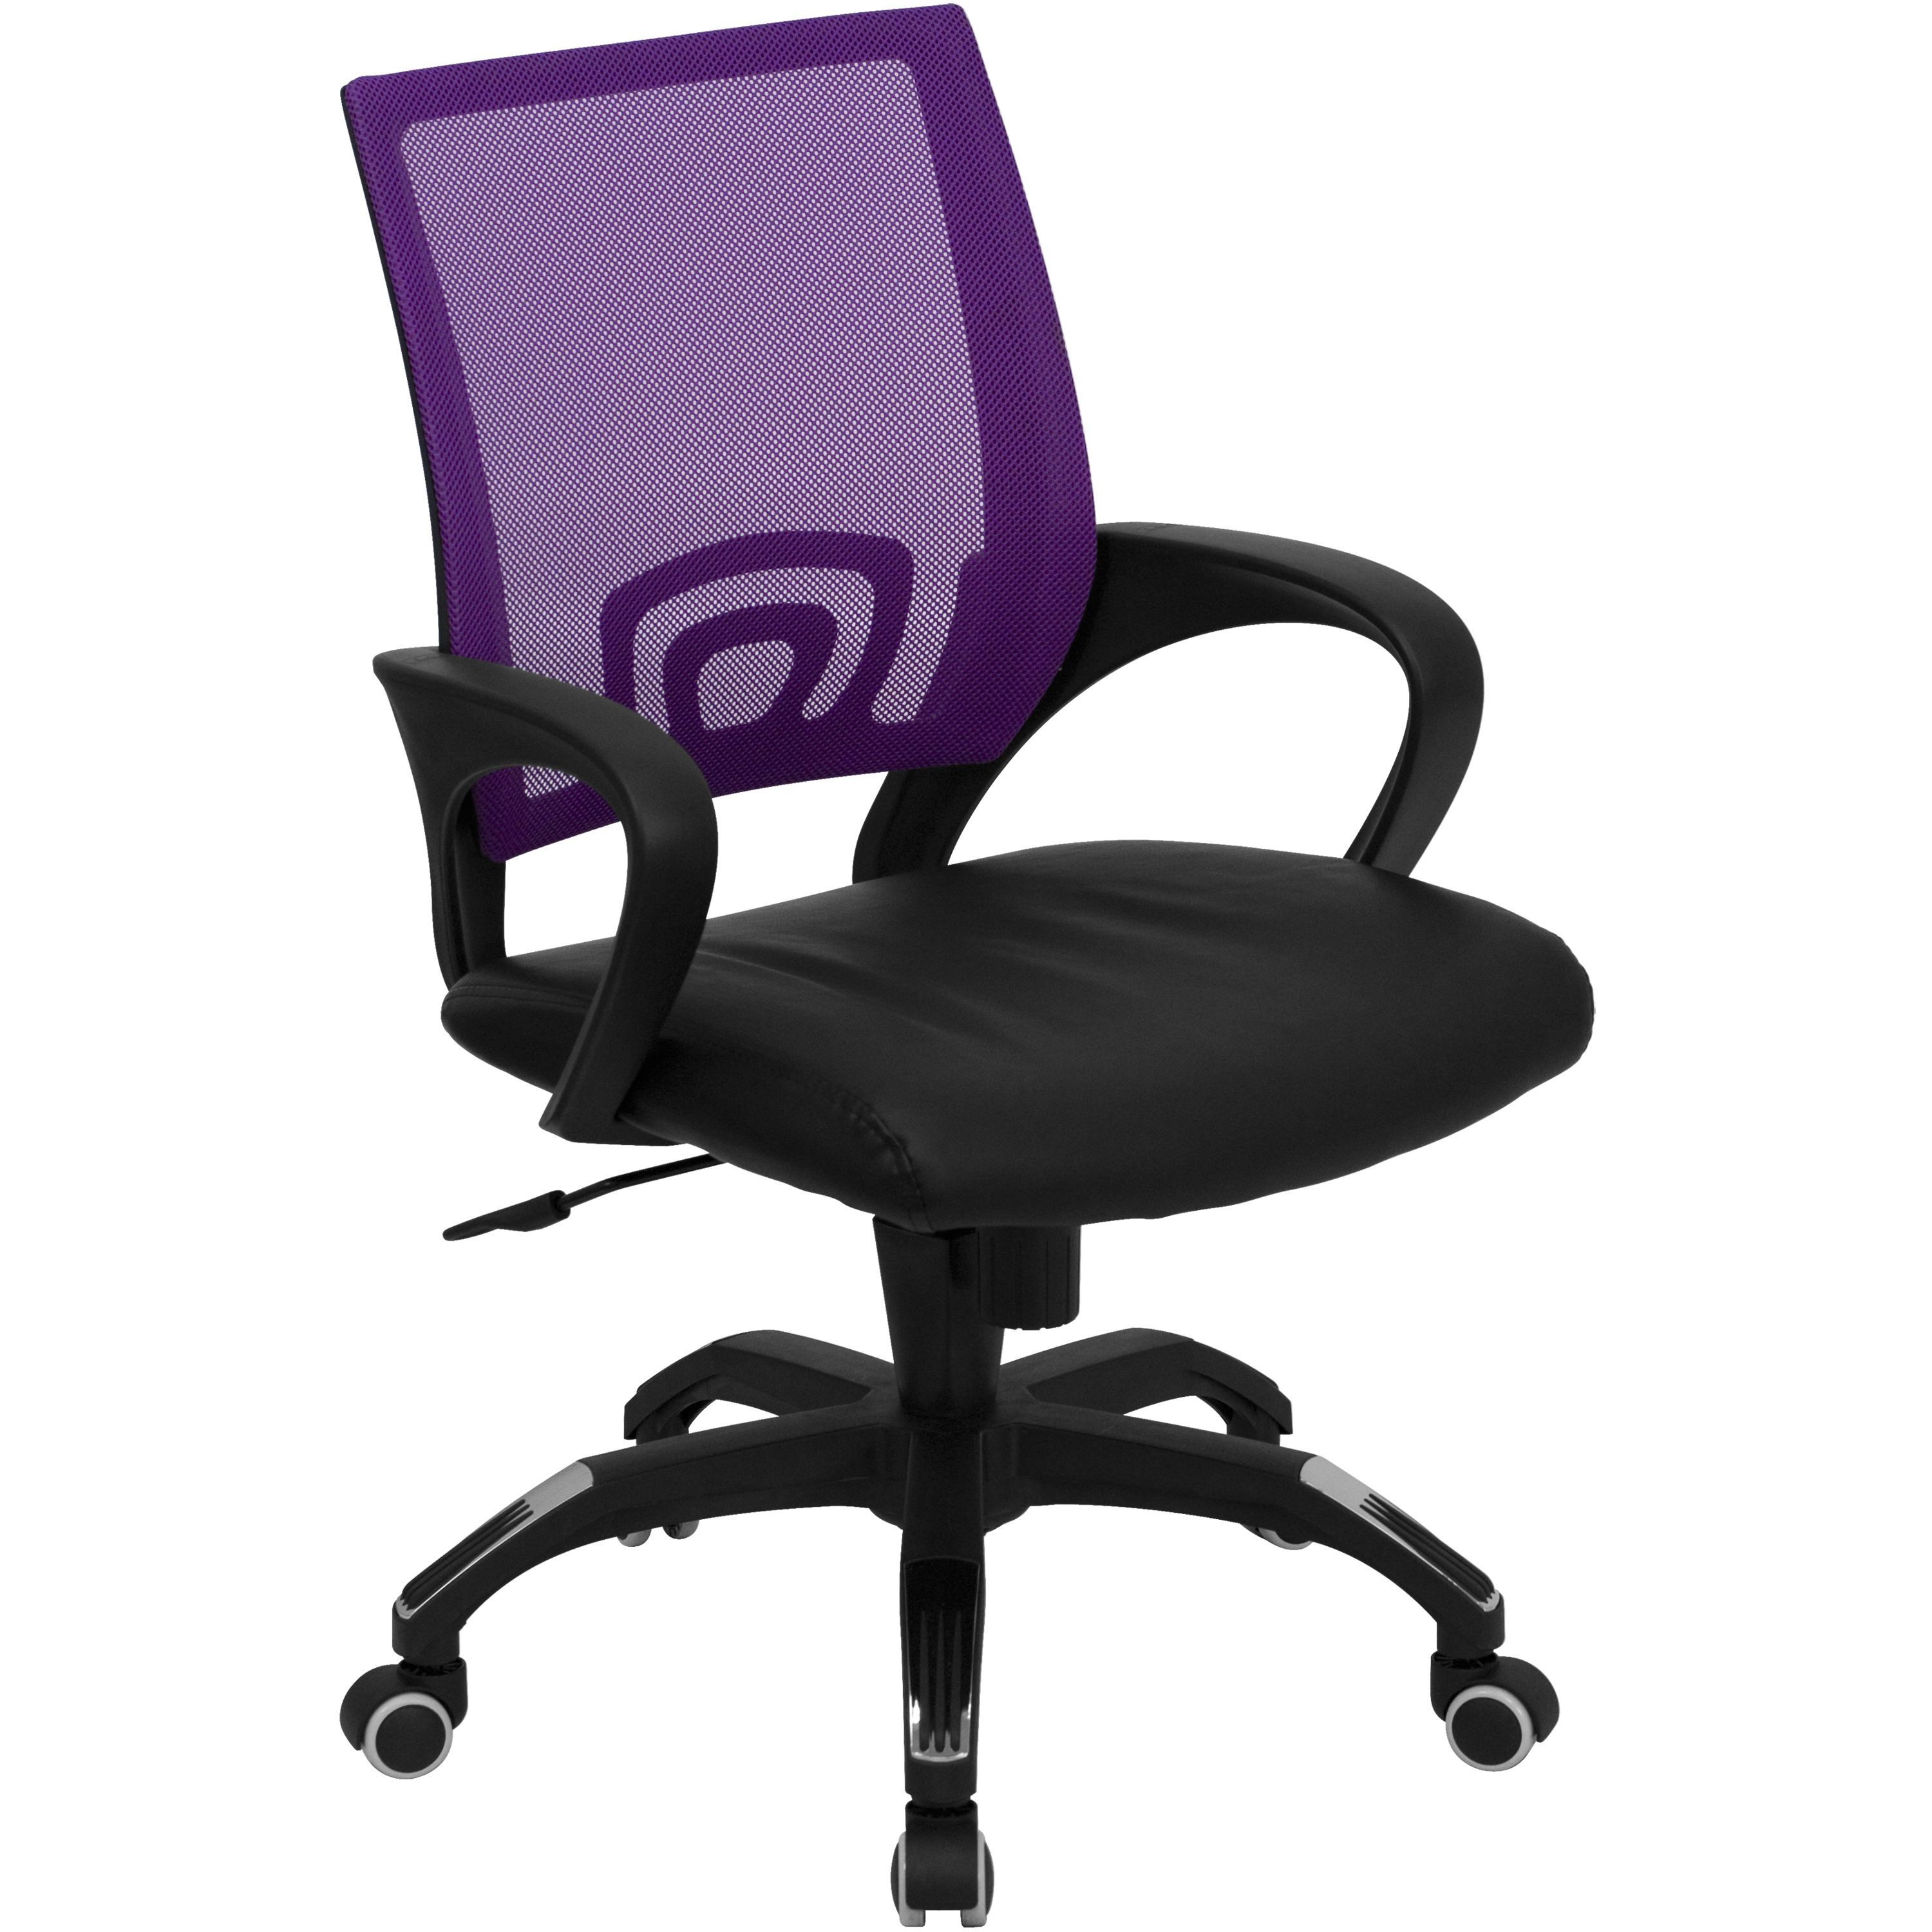 Flash Furniture CP-B176A01-PURPLE-GG Purple Mesh Office Chair with Black Leather Seat